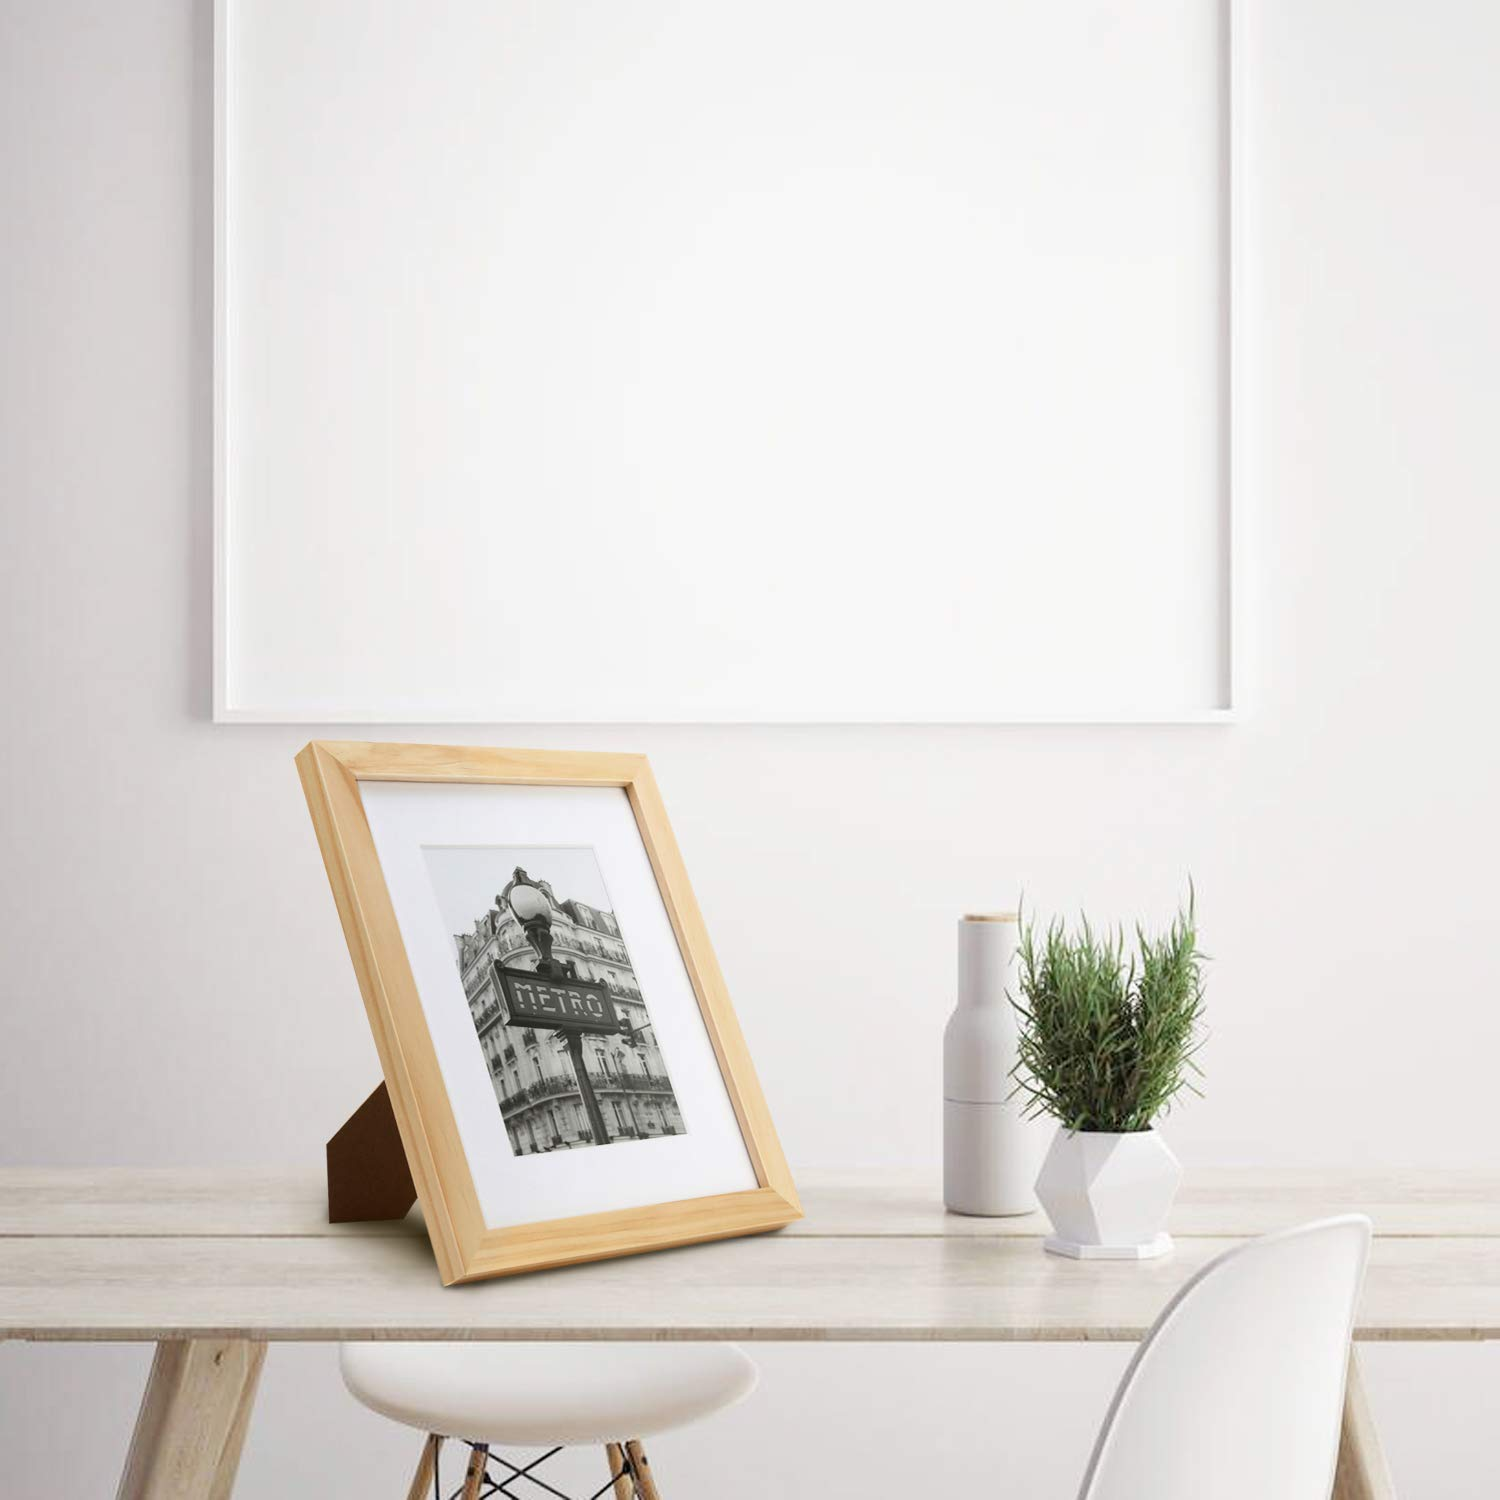 Mounting Hardware Included ONE WALL Tempered Glass 8x10 Picture Frame Solid Wooden Frame Set of 4 with Mats for 5x7 Photo Natural Wood Color Frames for Wall Mounting or Tabletop